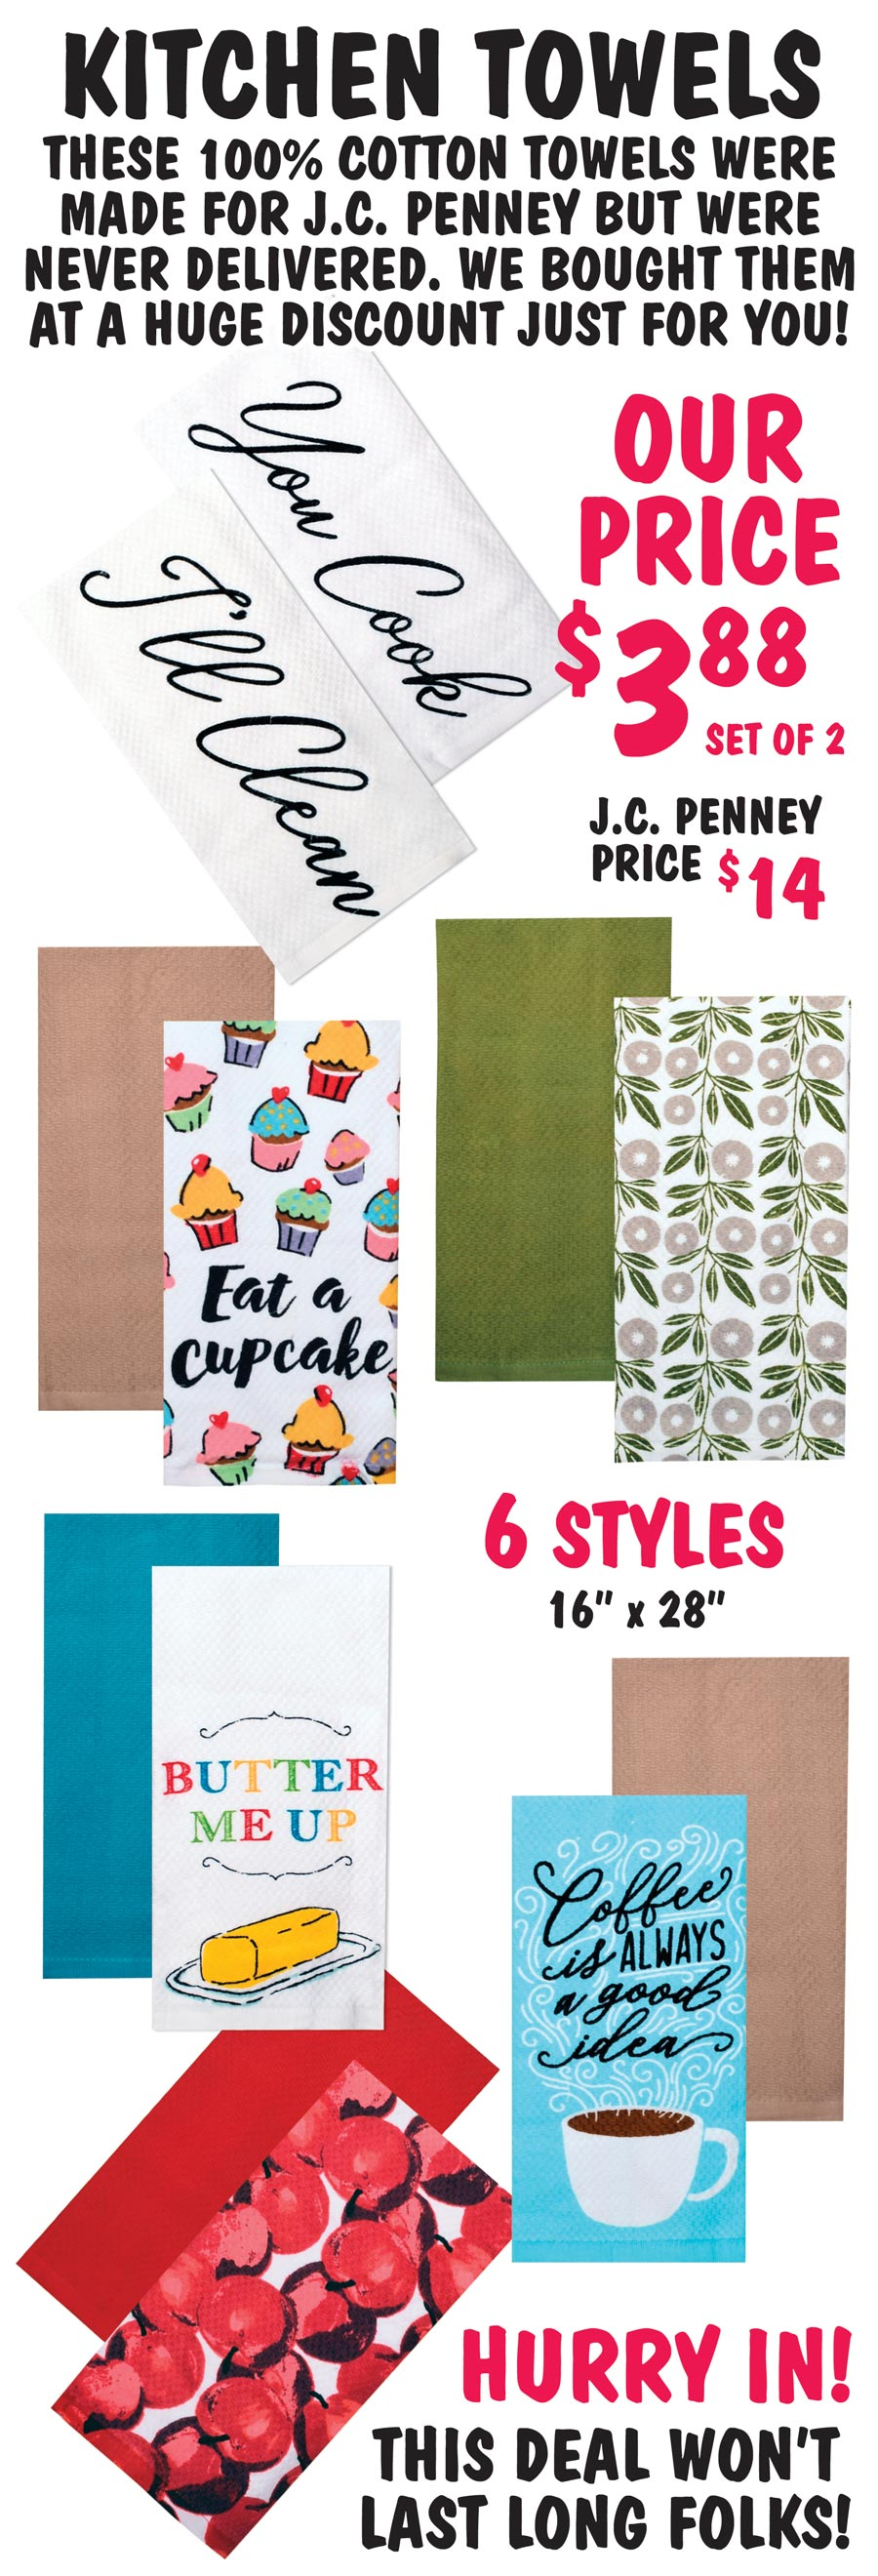 Kitchen Towels - Special Buy $3.88 for a set of 2